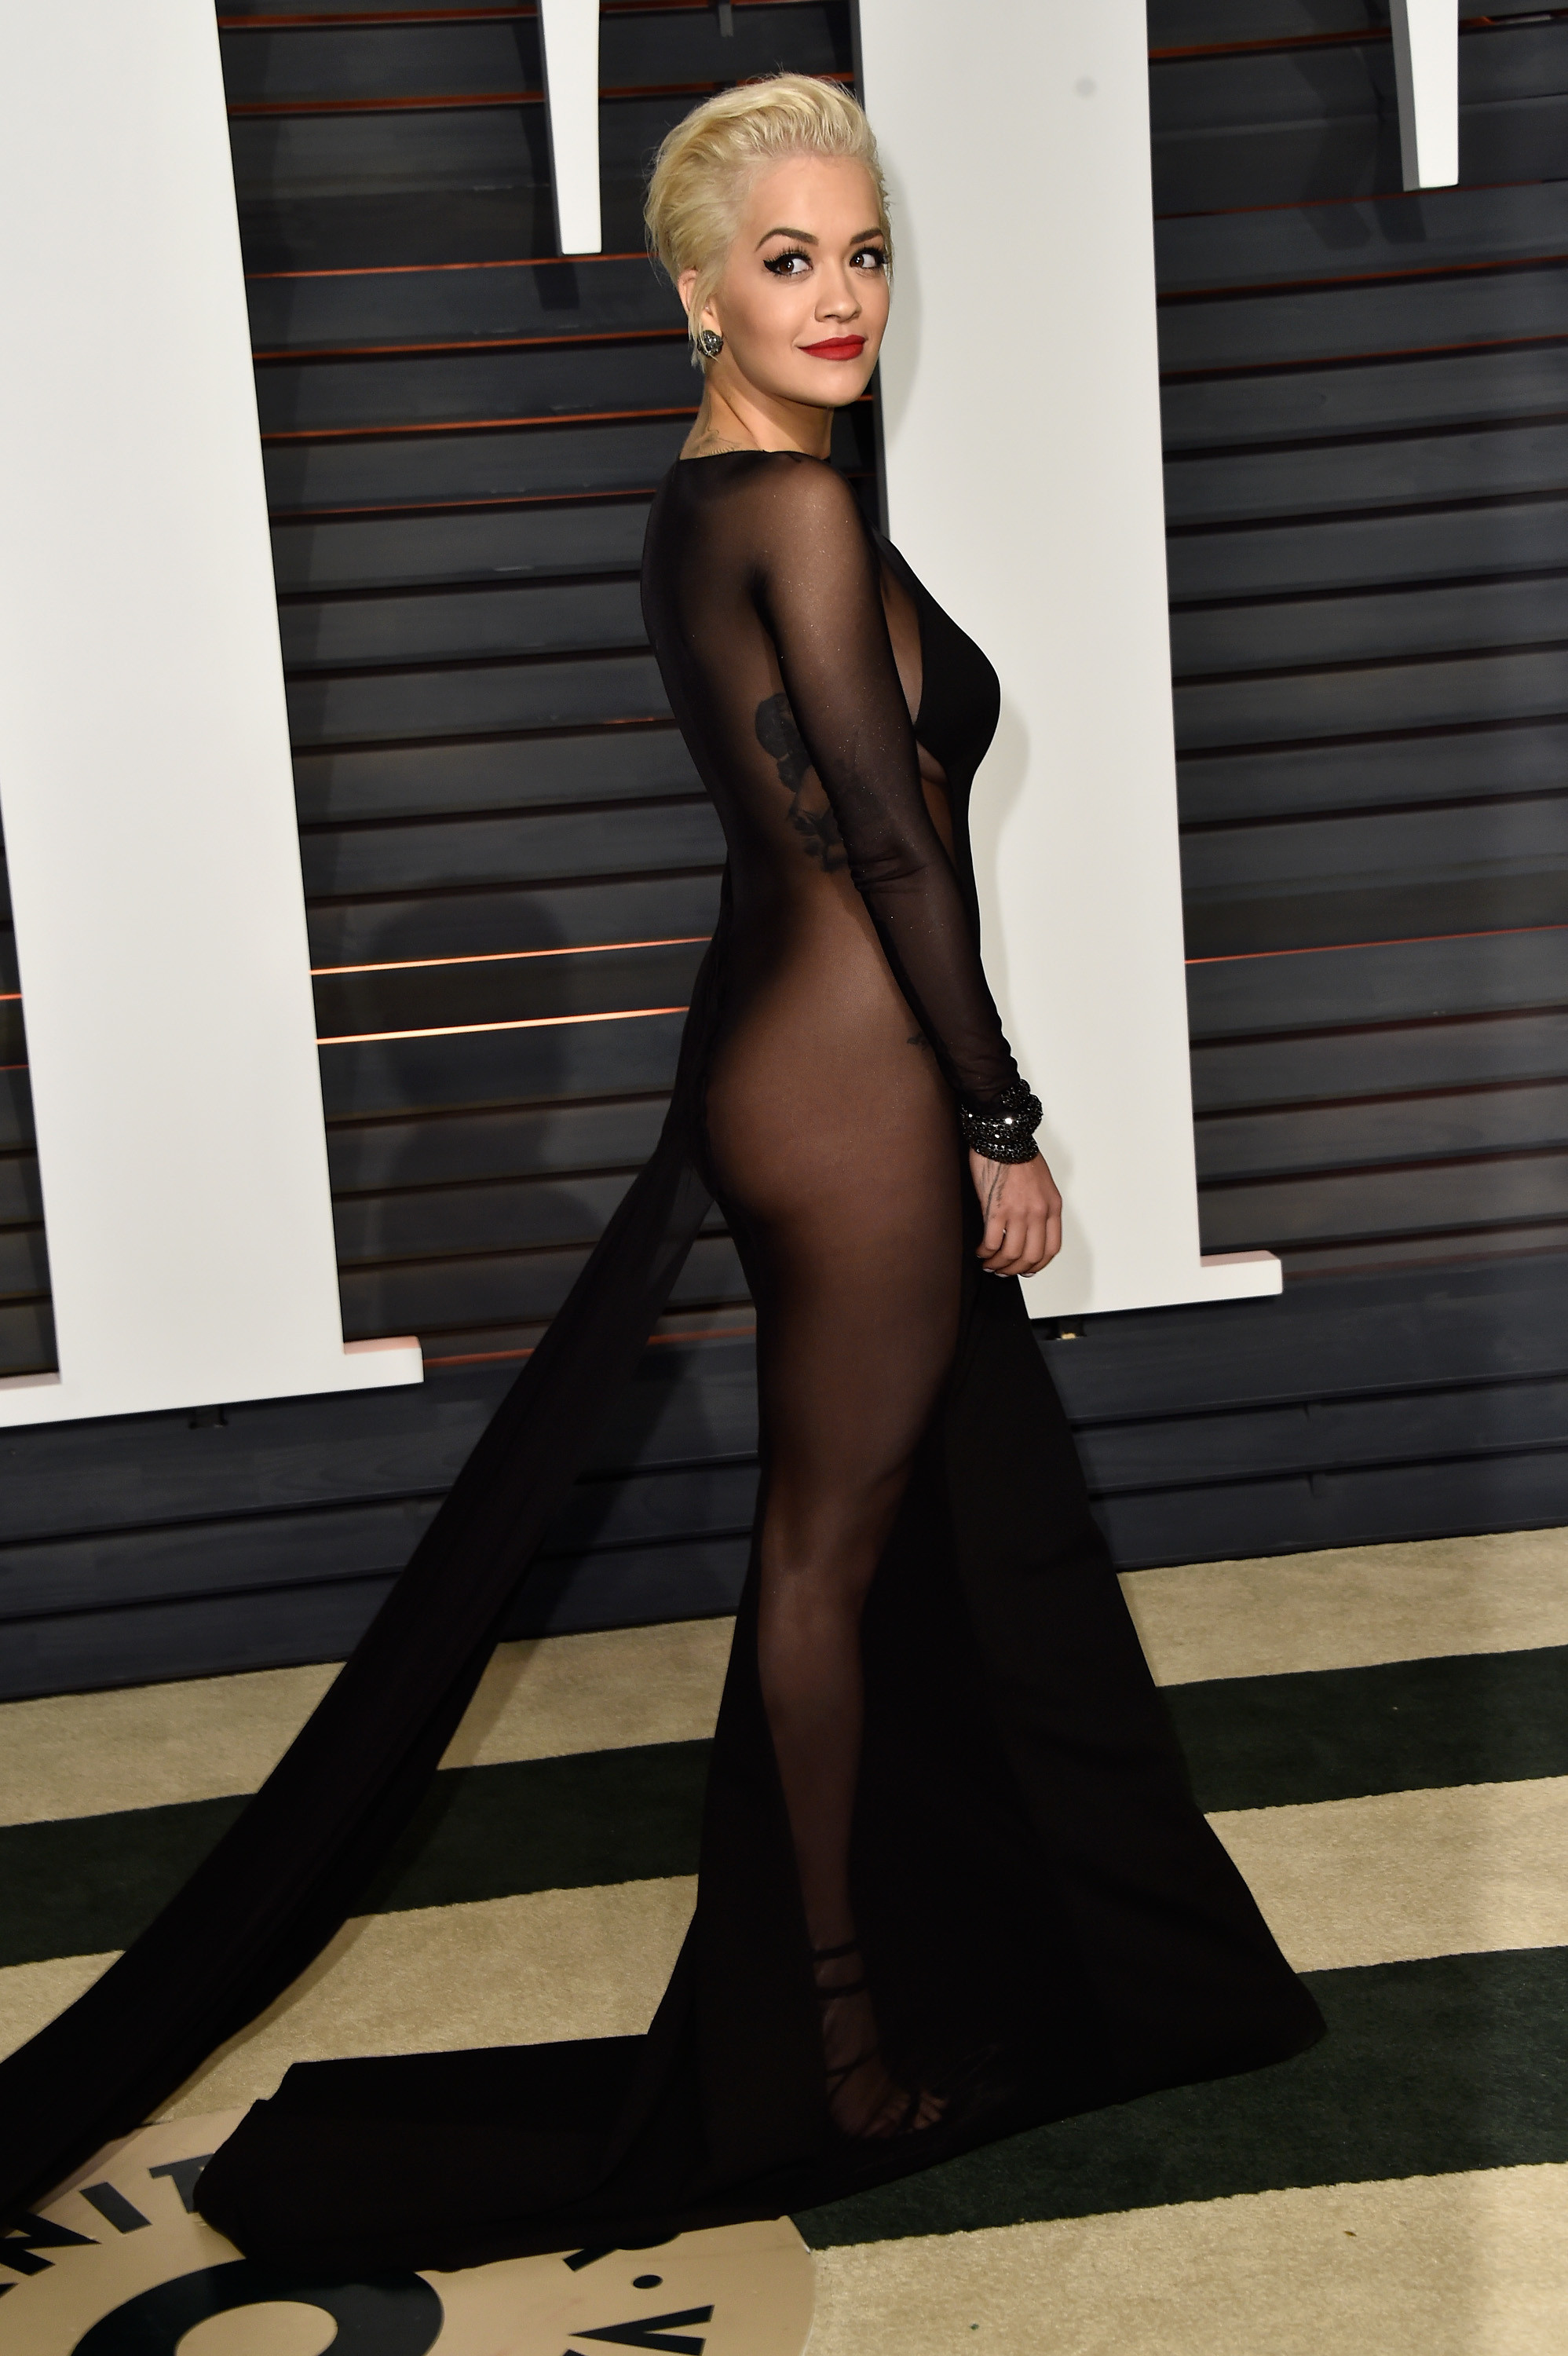 c83939d8994 We Never Expected to See This Oscars Trend - Celebrity Style - Livingly